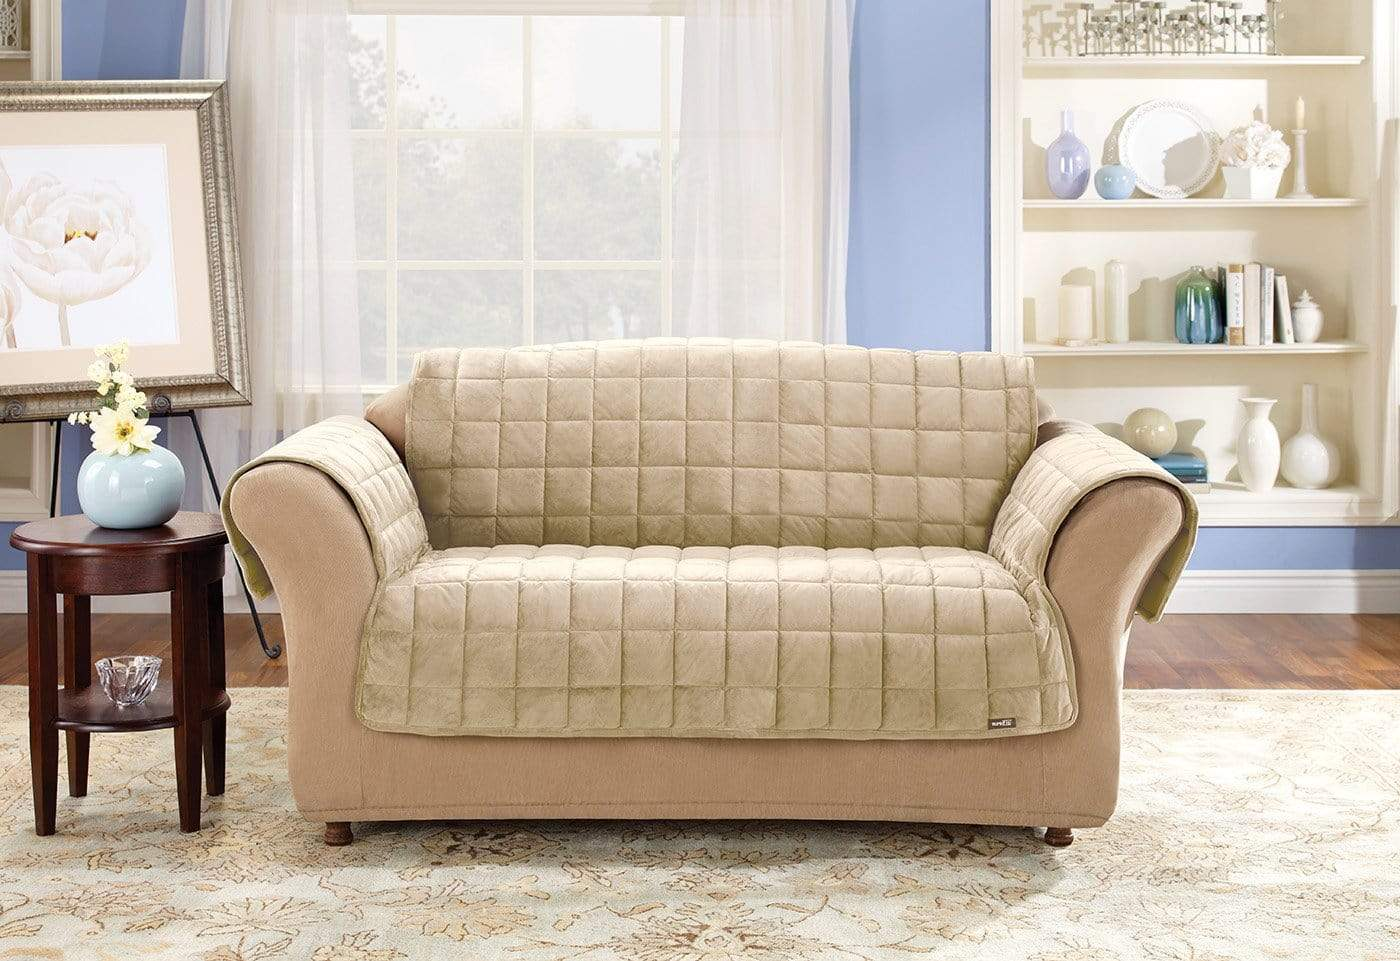 Deluxe Comfort Sofa Furniture Cover With Arms - Sofa / Ivory